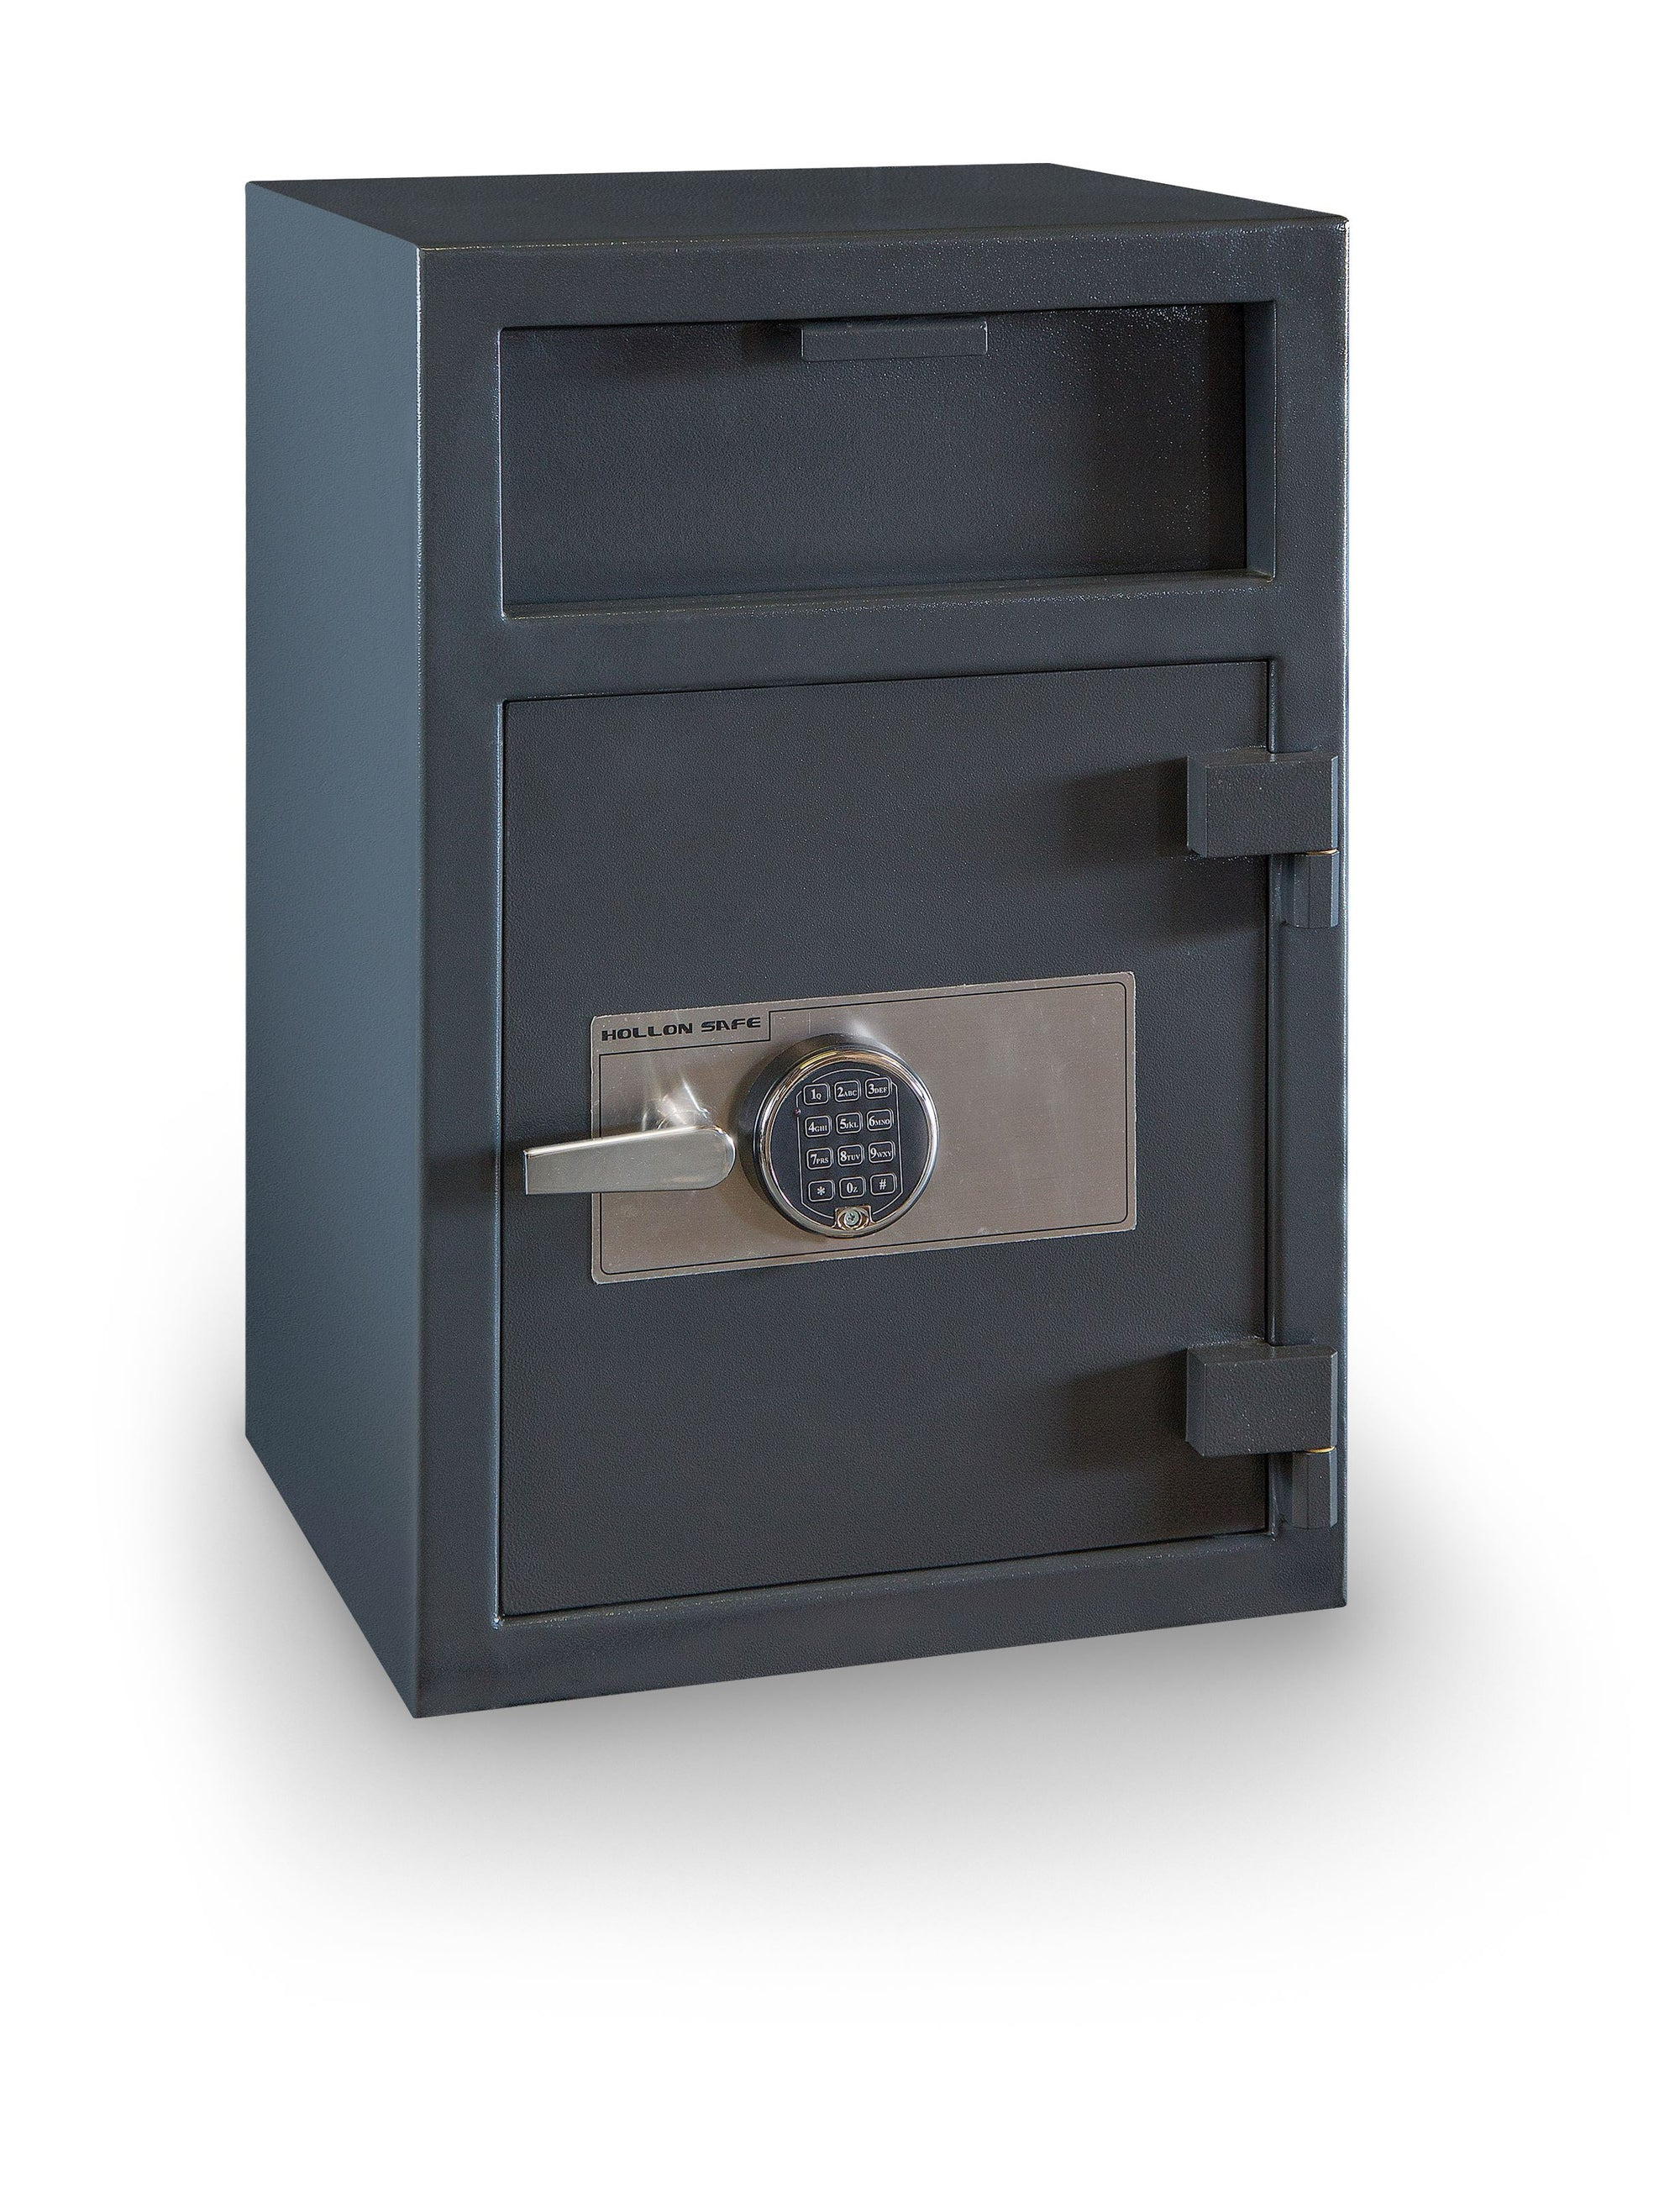 FD-3020E B-Rated Depository Safe - S&G UL Listed Type 1 Electronic Keypad